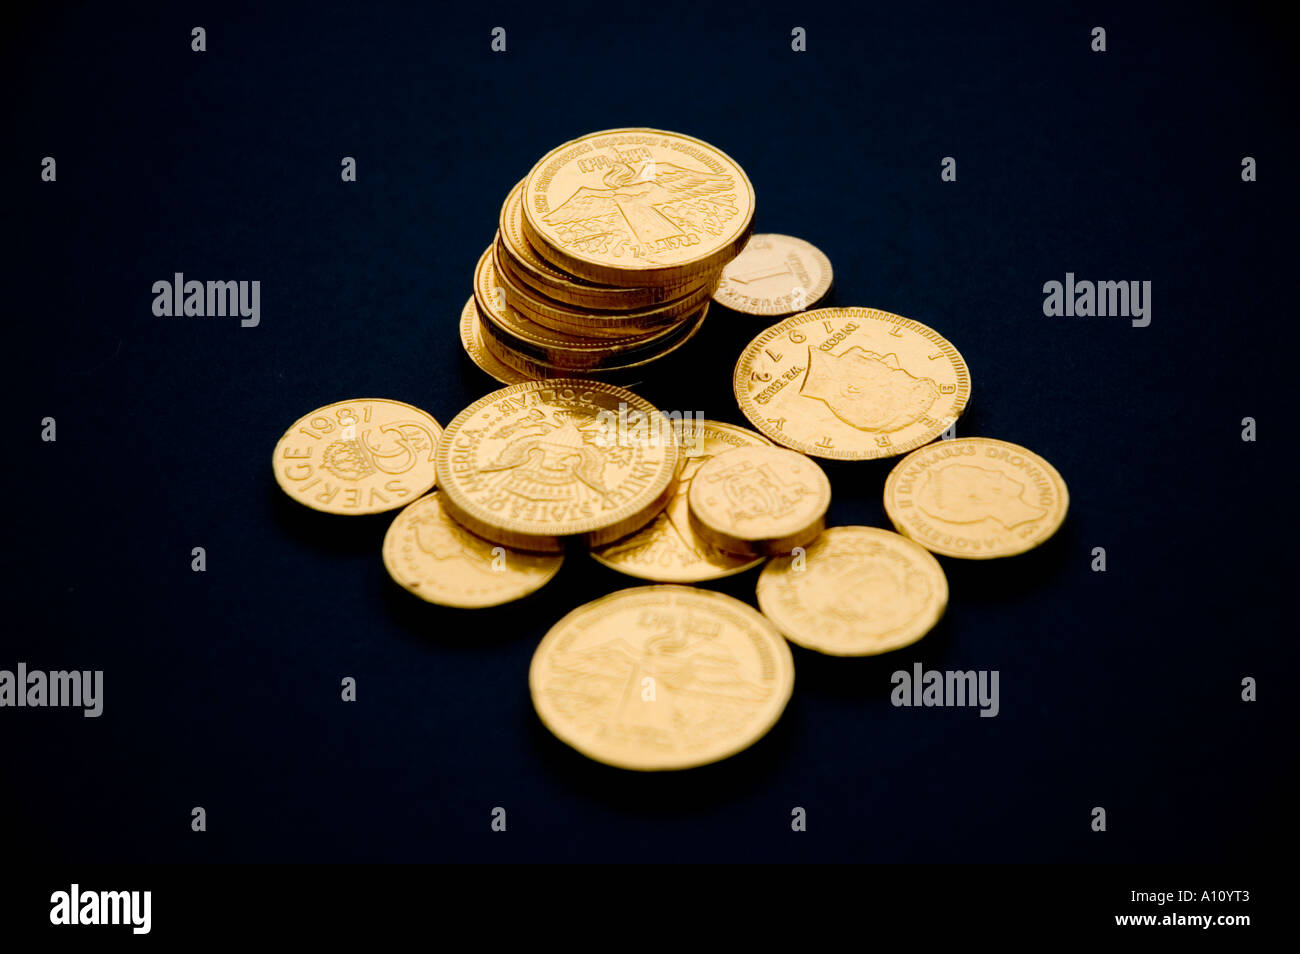 ed0a630e19e Artificial gold coins on a black background Stock Photo  5775554 - Alamy